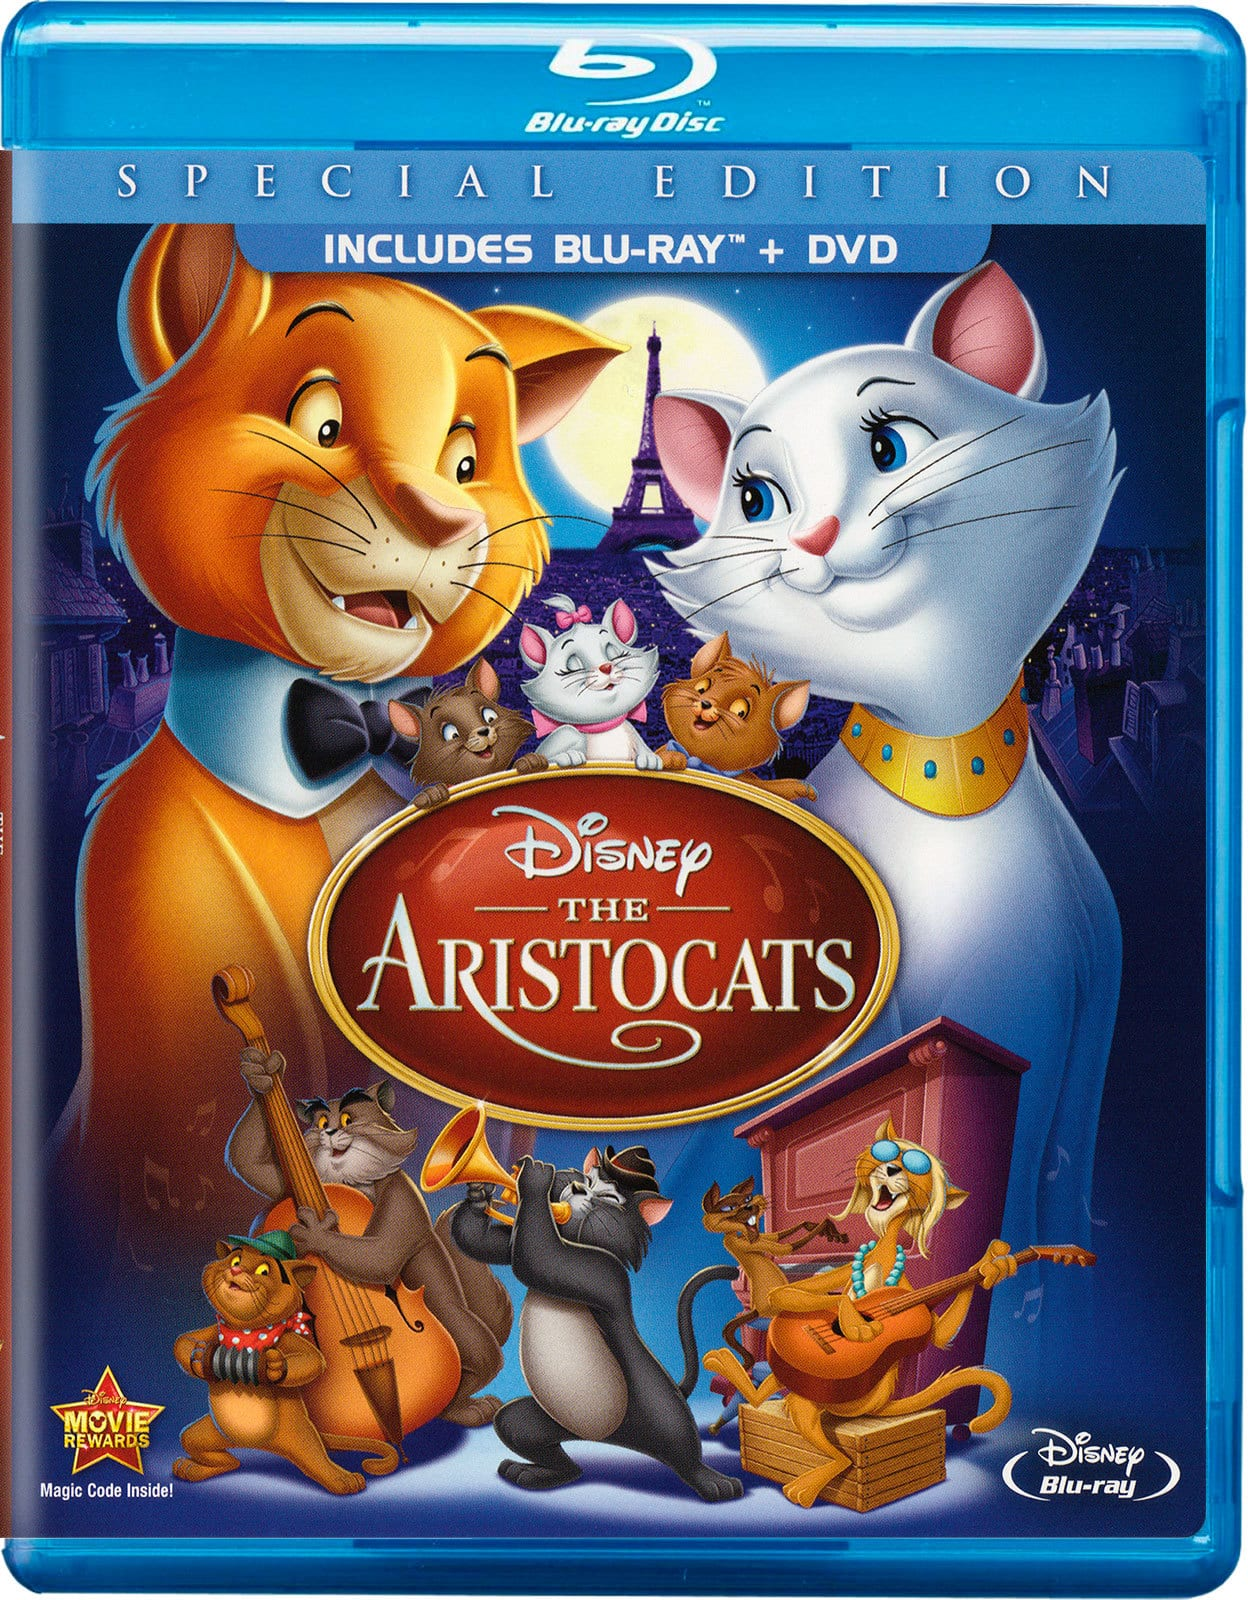 Disney Blu-Ray Films: Robin Hood (1973), Enchanted or Aristocats